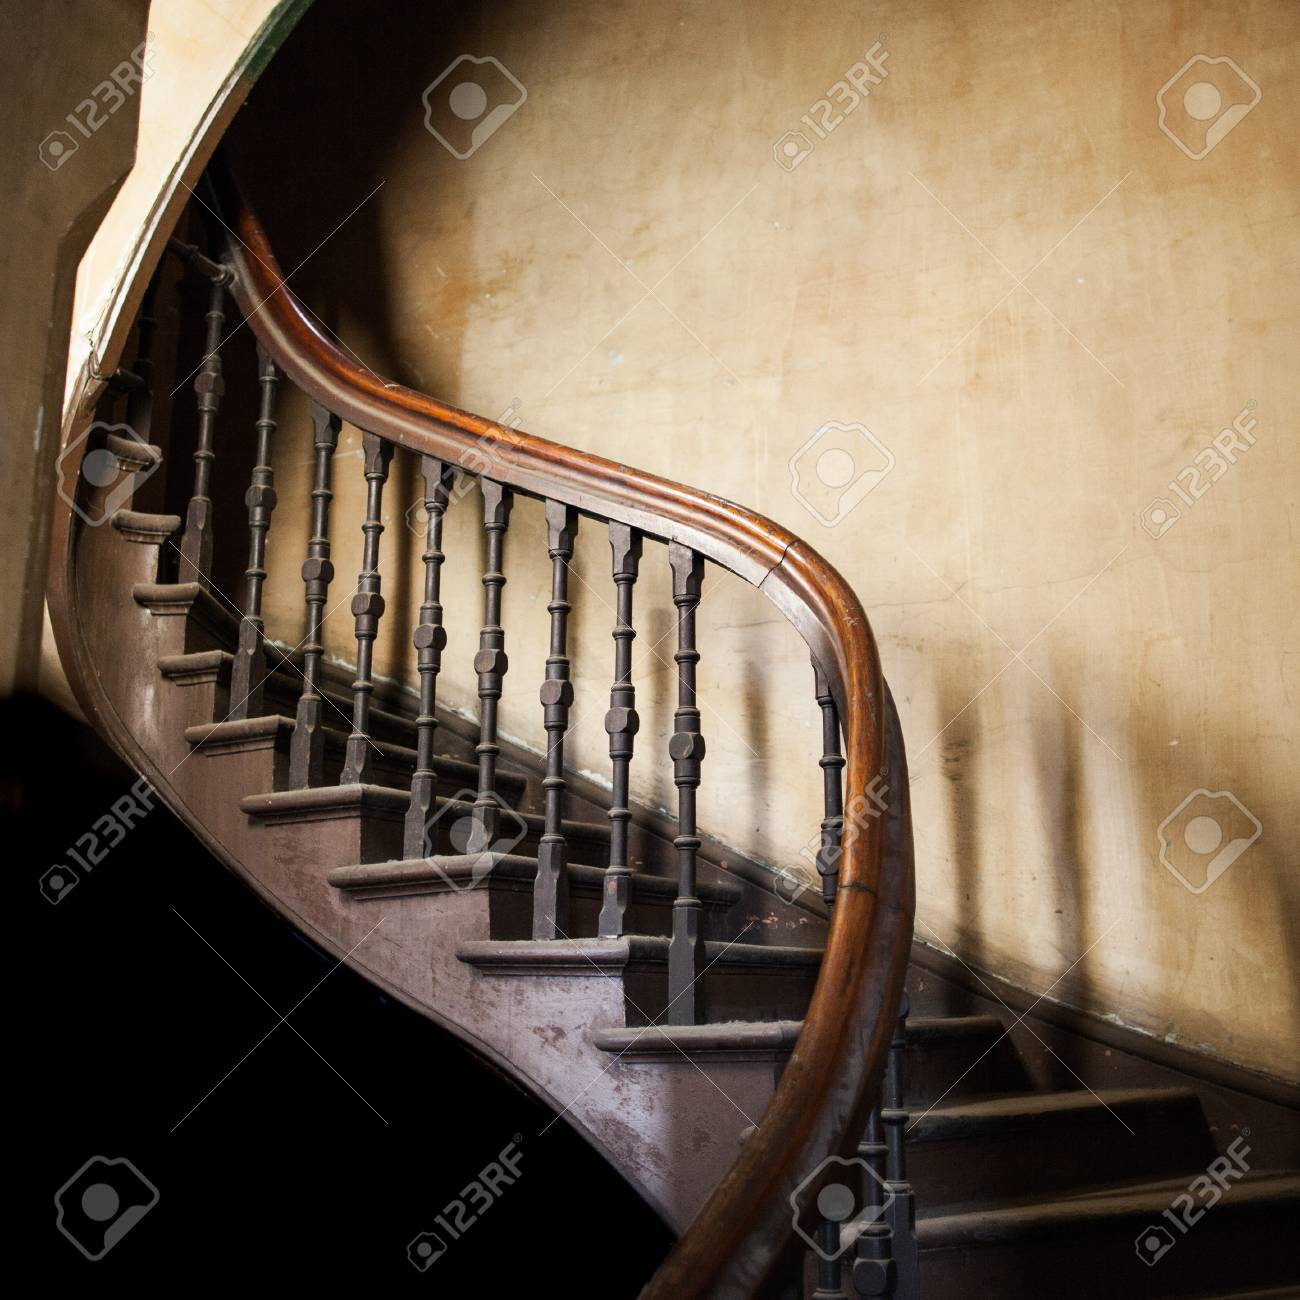 Stock Photo   Vintage Wooden Winding Staircase Going Up With Copy Space On  Old Decaying Wall